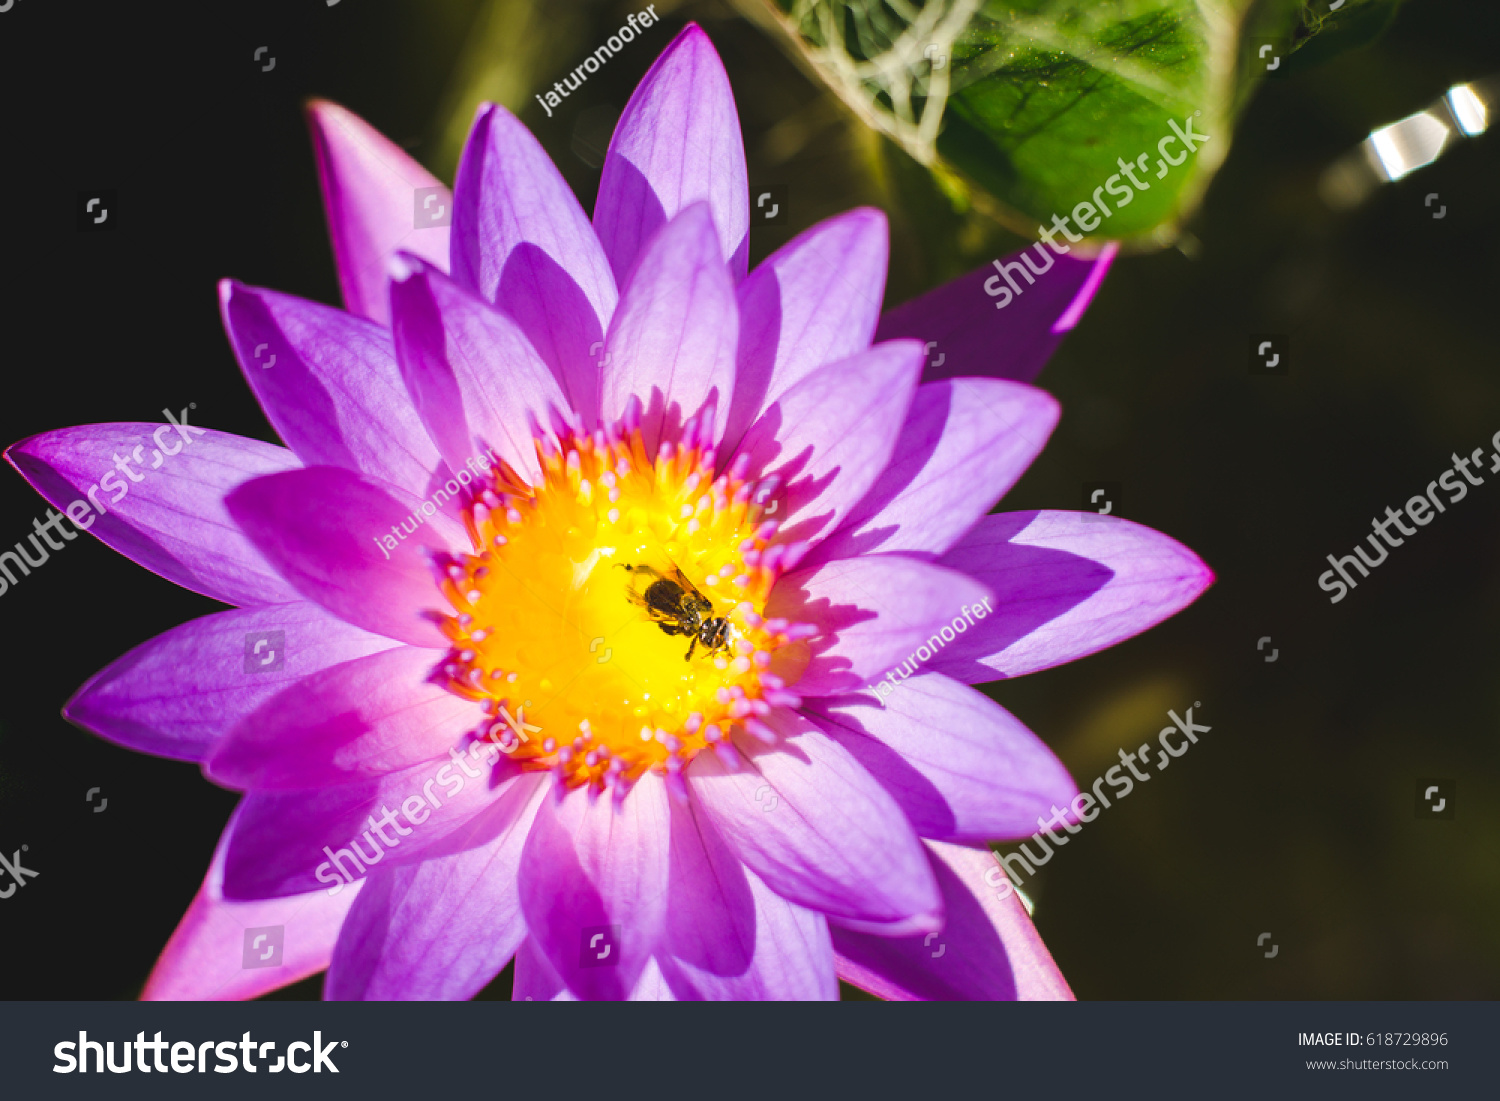 Close up water lily with dead bee on pollen ez canvas id 618729896 izmirmasajfo